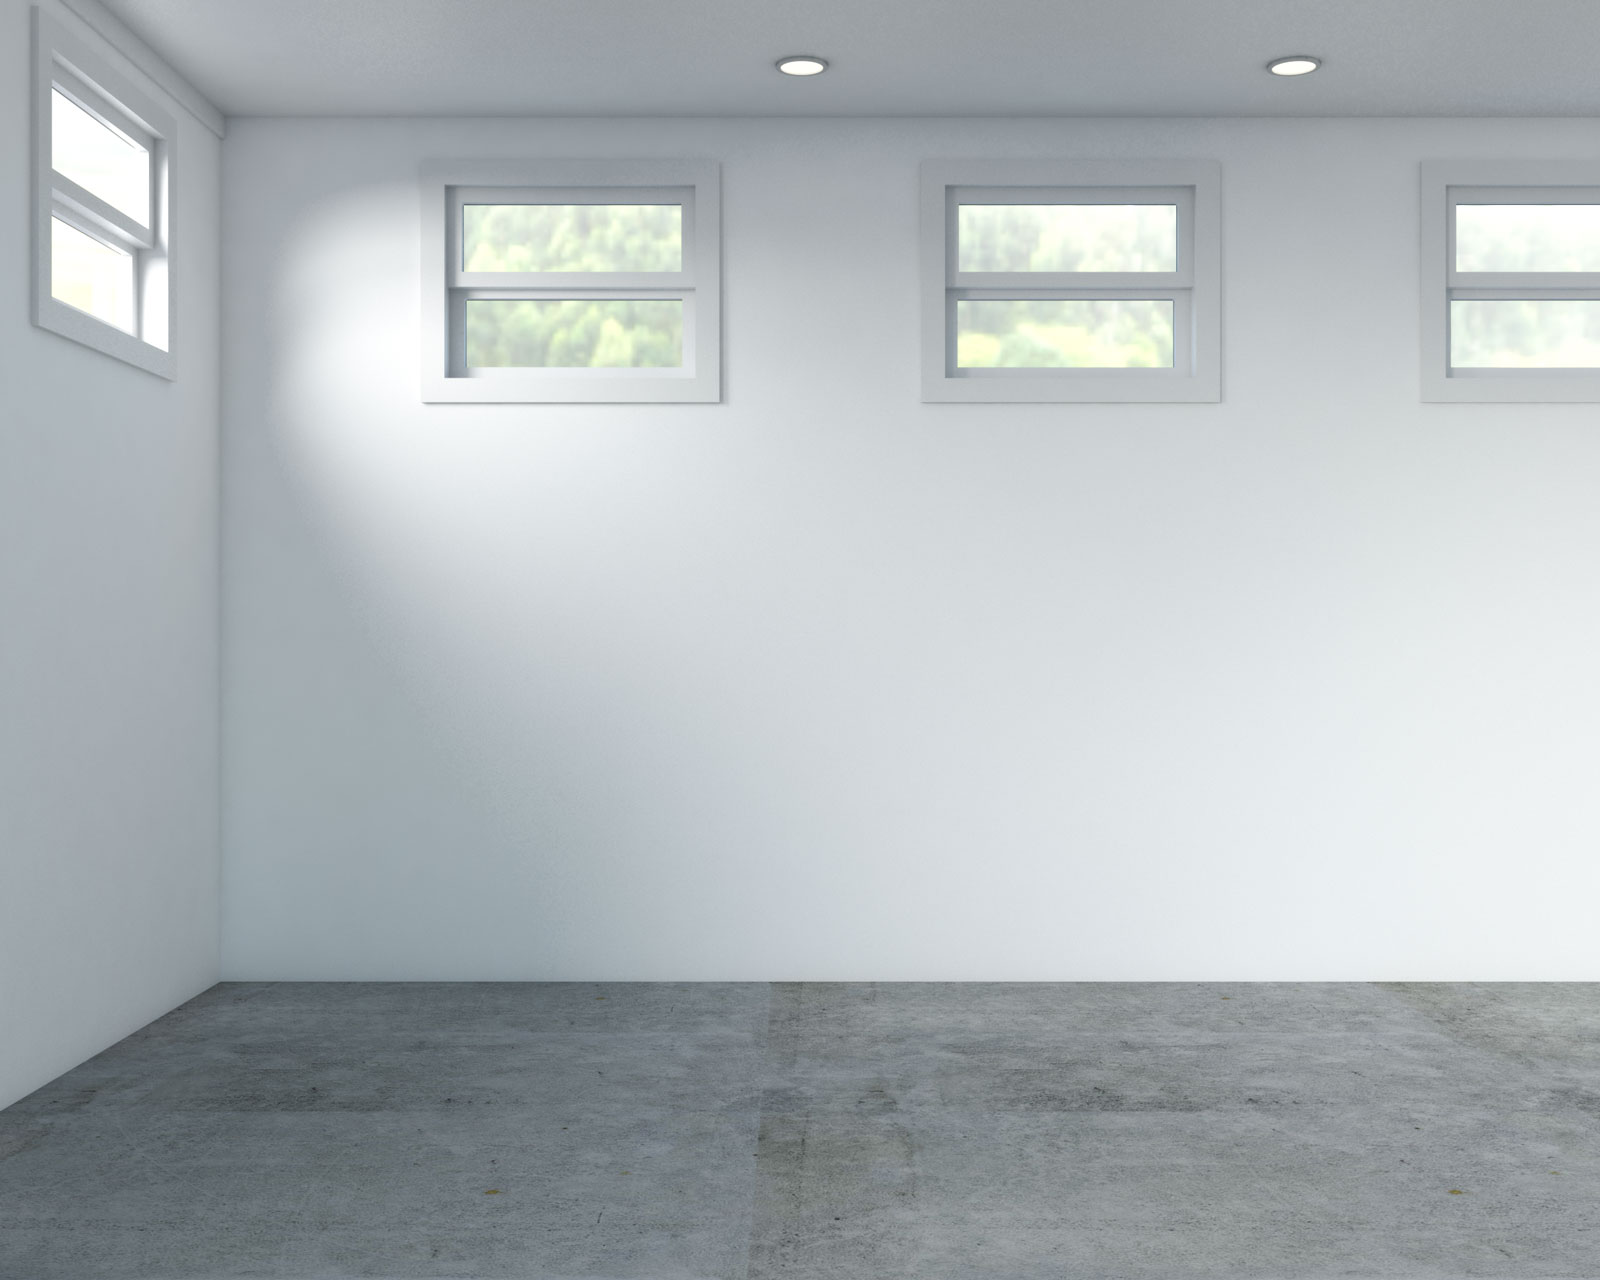 Basement with white walls and concrete flooring